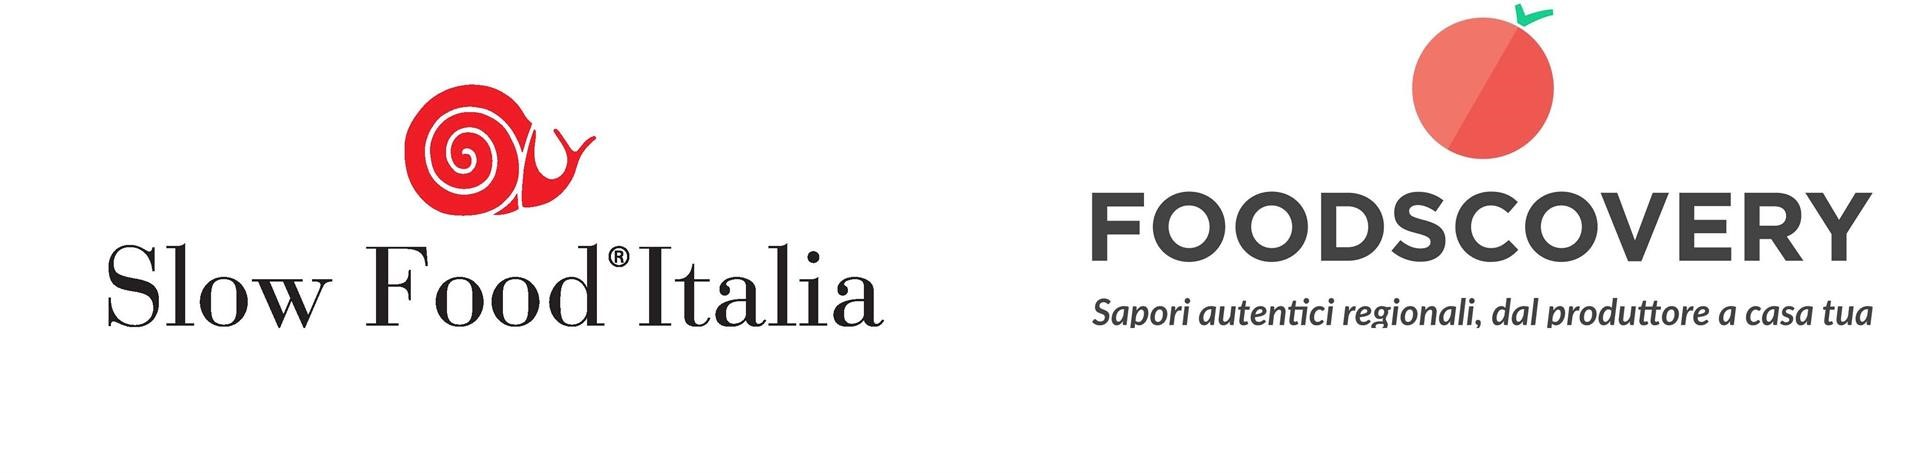 Slow Food Italia e Foodscovery partner per la digitalizzazione